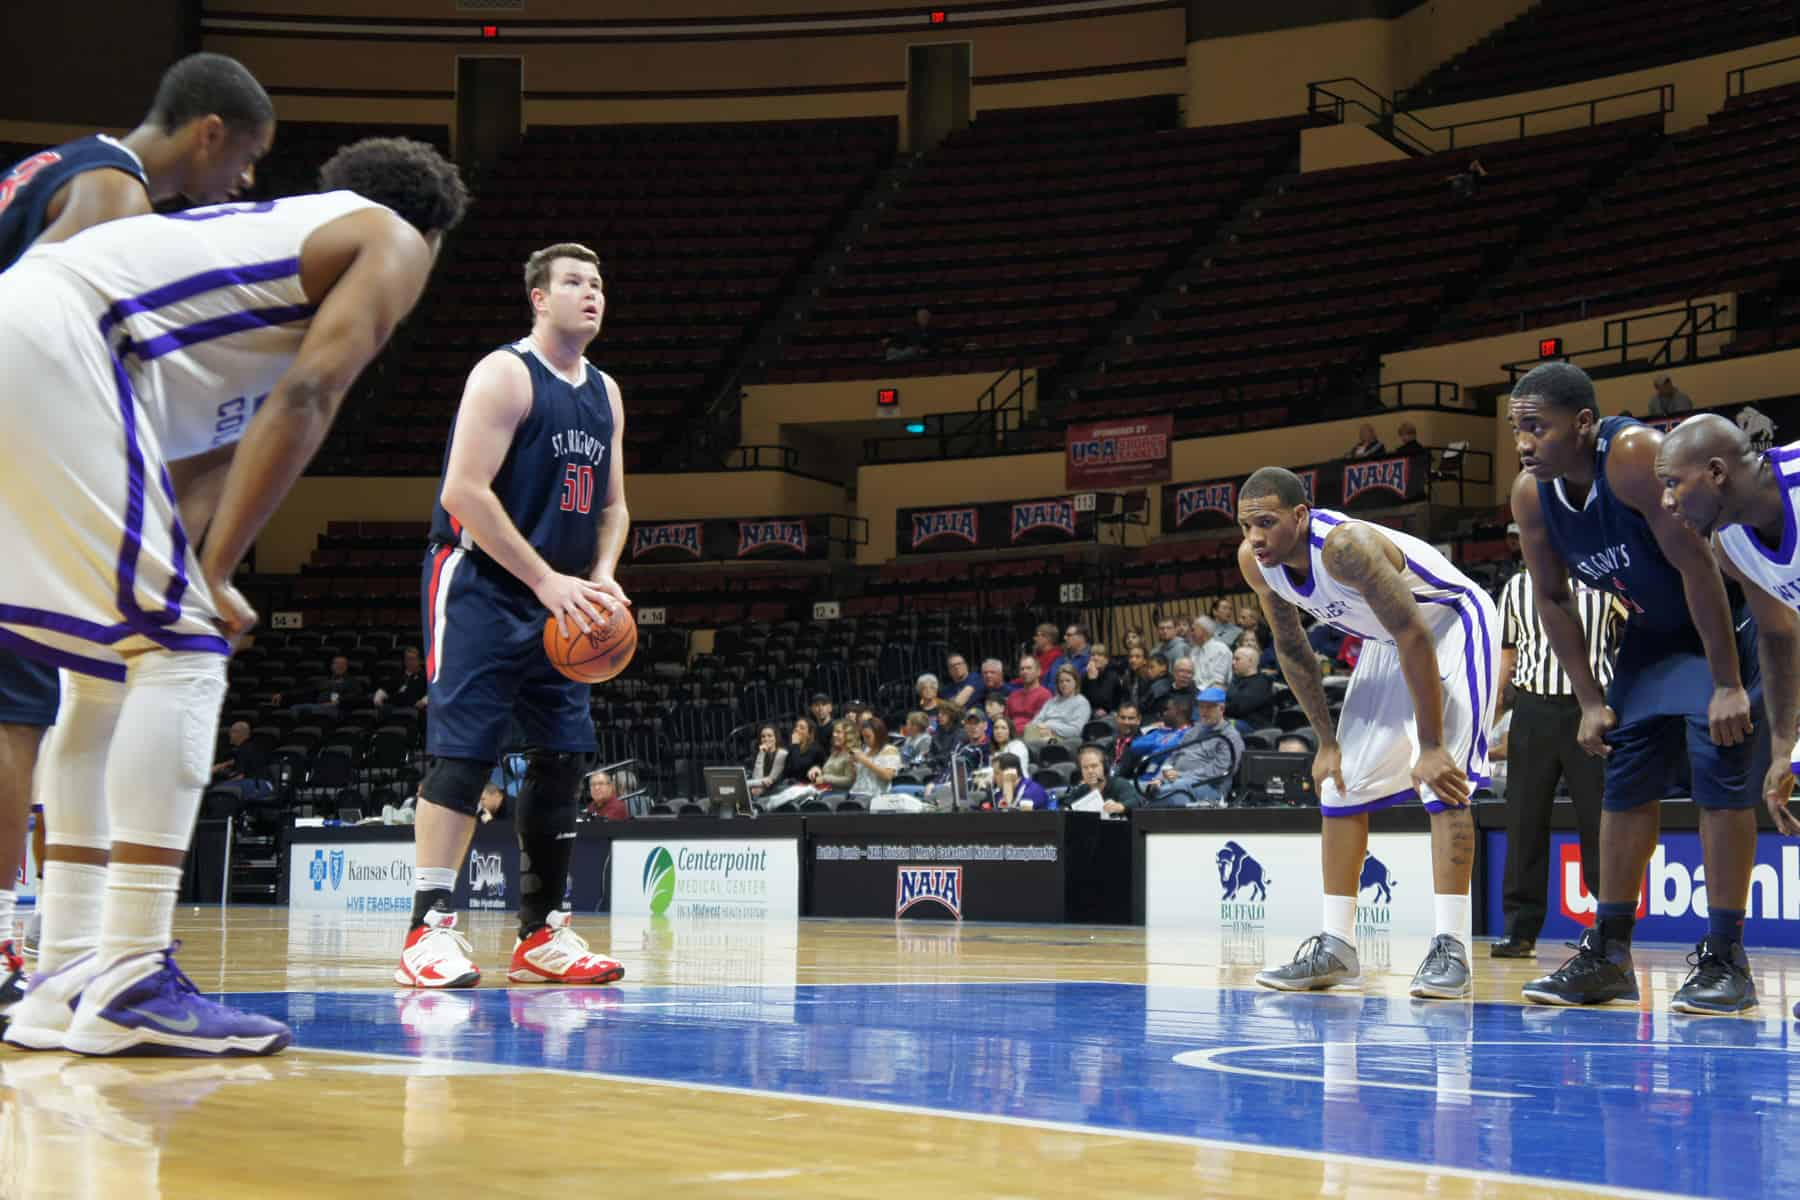 St. Gregory's senior Brock Vorwald shoots a free throw Thursday at the NAIA Division I National Championship. The No. 18-ranked Cavaliers advanced to the second round with an 84-69 win over No. 15 Wiley (Texas). (Photo by Brad Collins, St. Gregory's Sports Information)